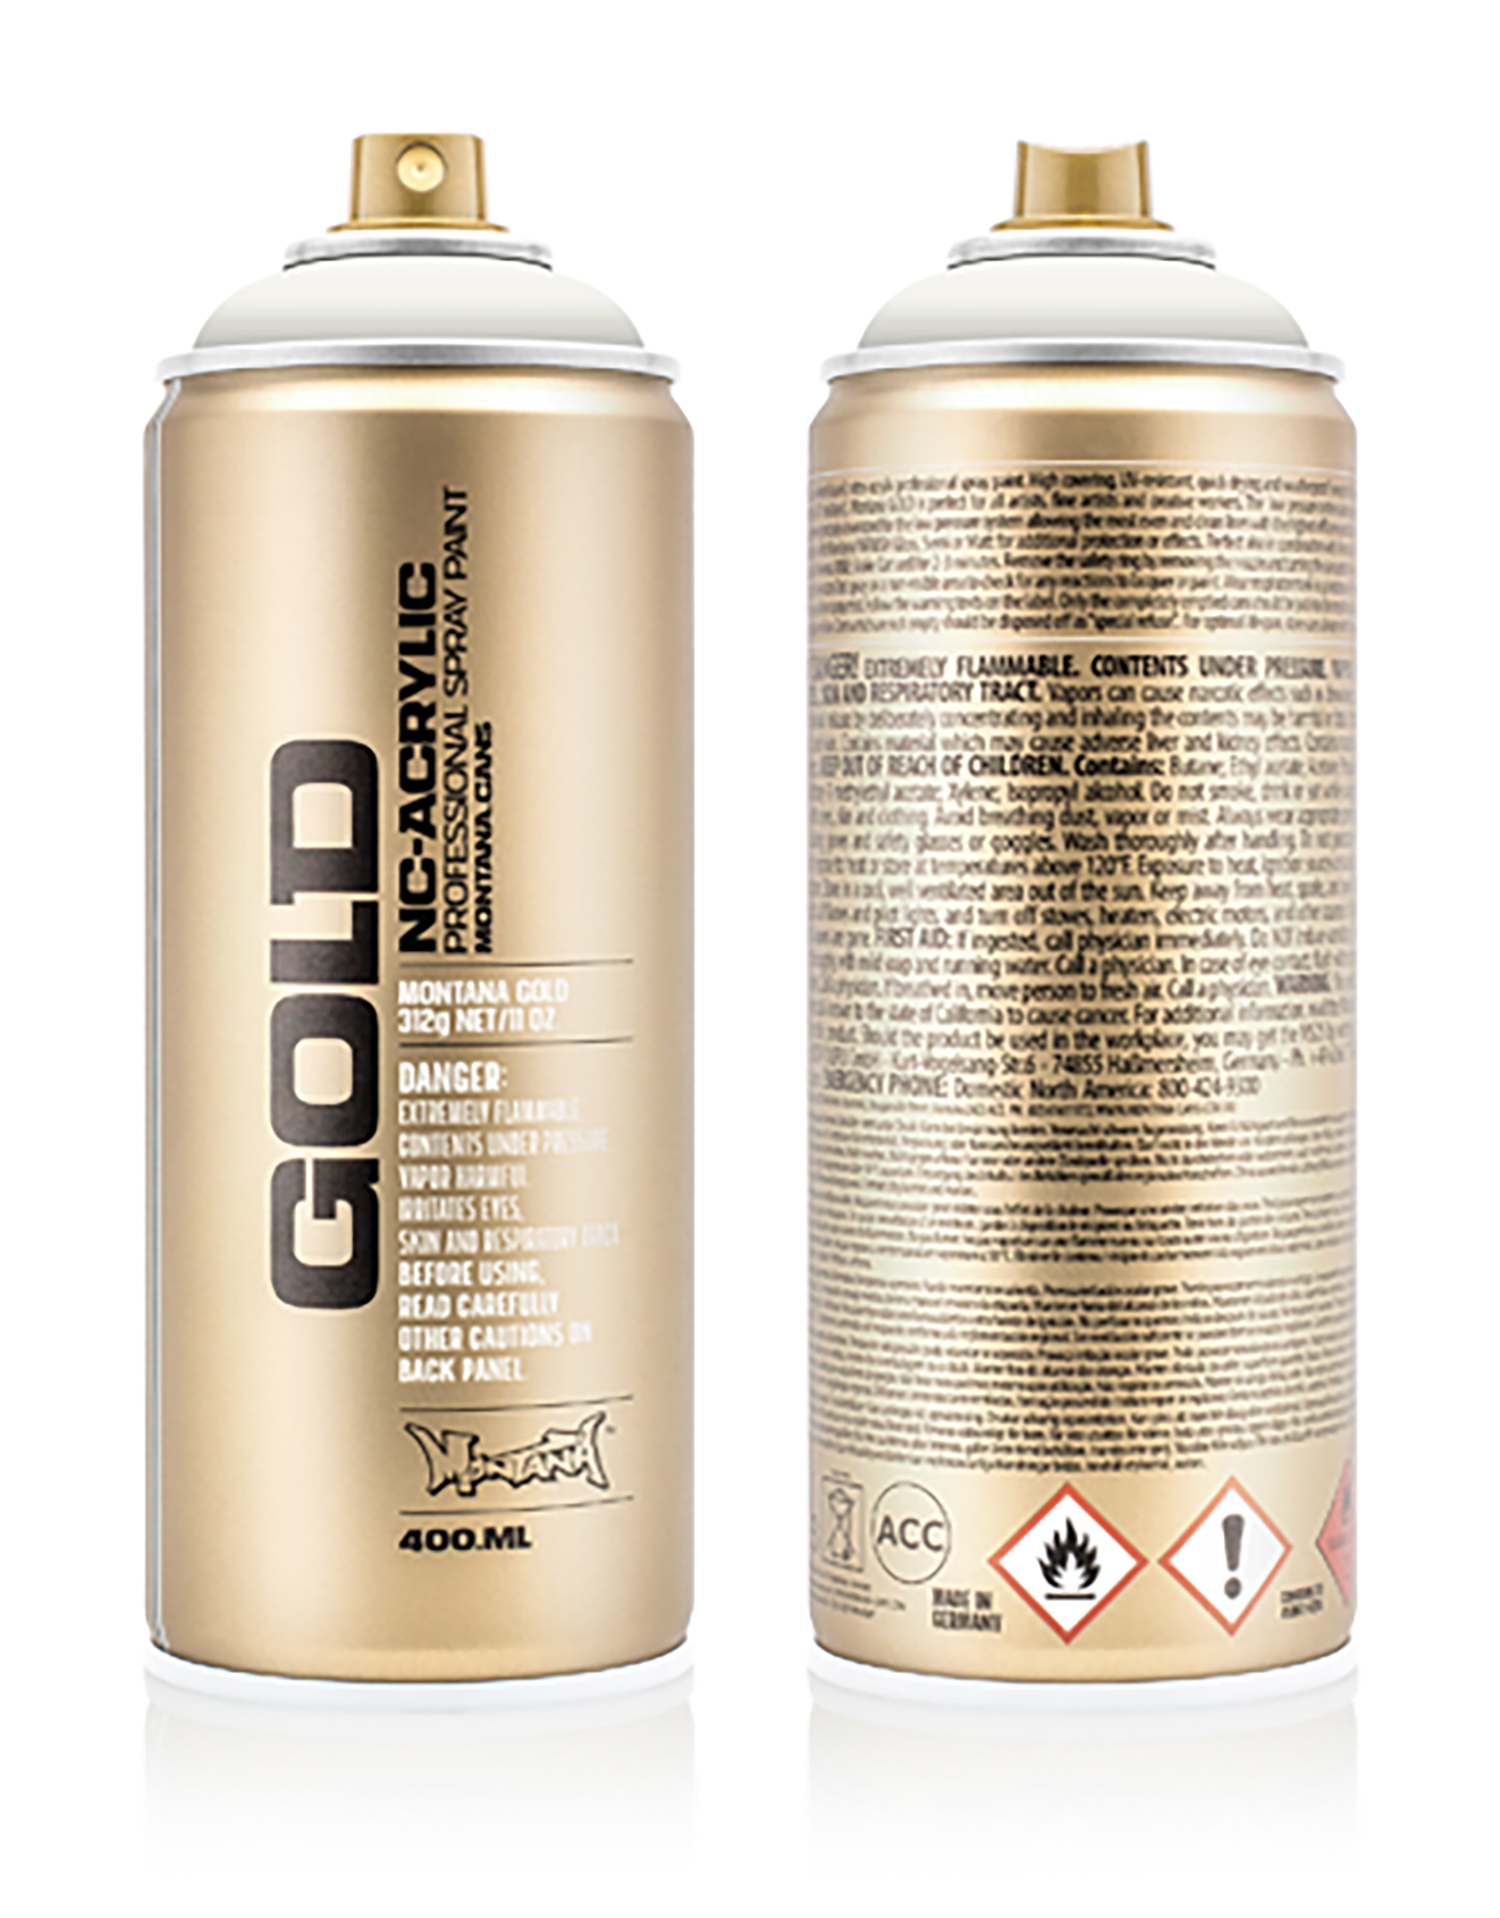 MONTANA-GOLD-SPRAY-400ML-G-7000